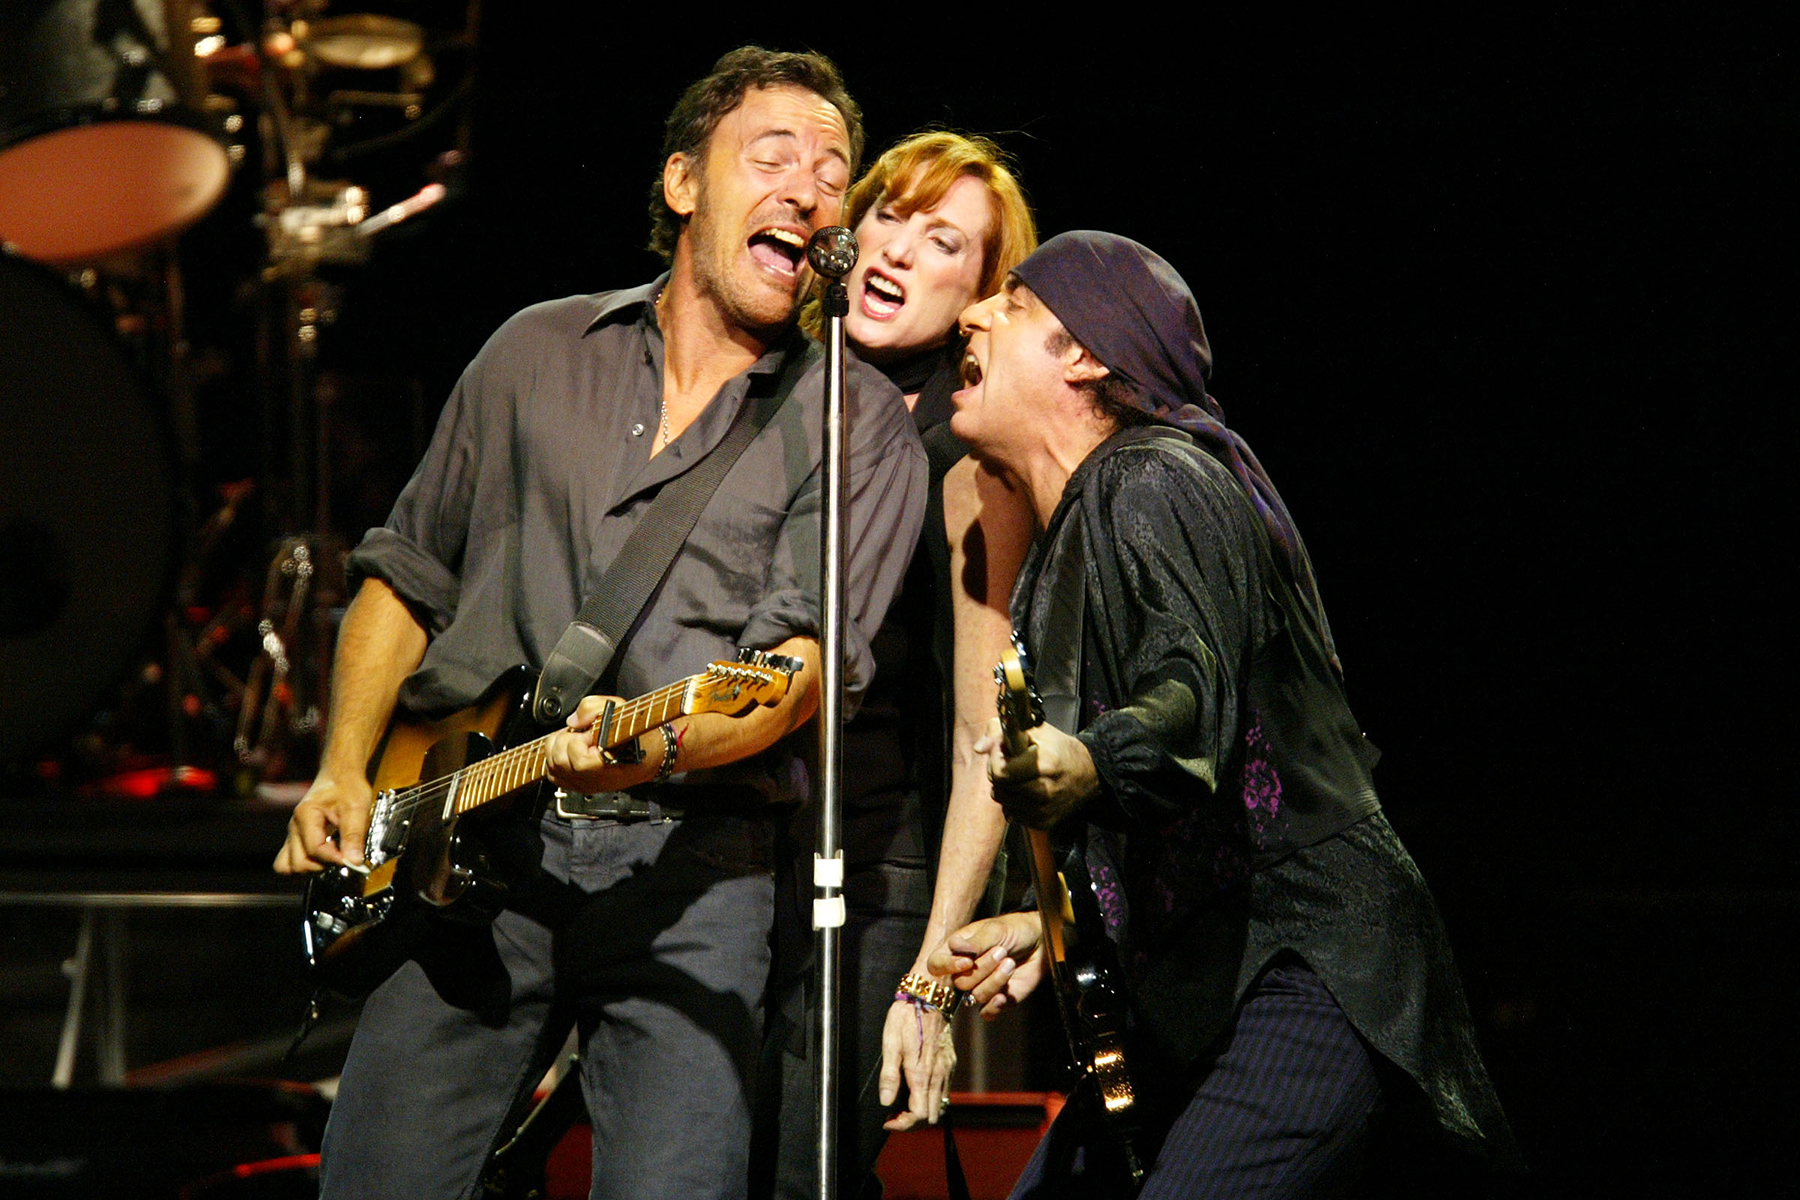 """Bruce Springsteen, Patty Scialfa, and Steven Van Zandt perform during the first show of the """"Bruce Springsteen & the E Street Band"""" tour at the Continental Airlines Arena in East Rutherford, New Jersey, August 7, 2002. Photo by Frank Micelotta/ImageDirect."""